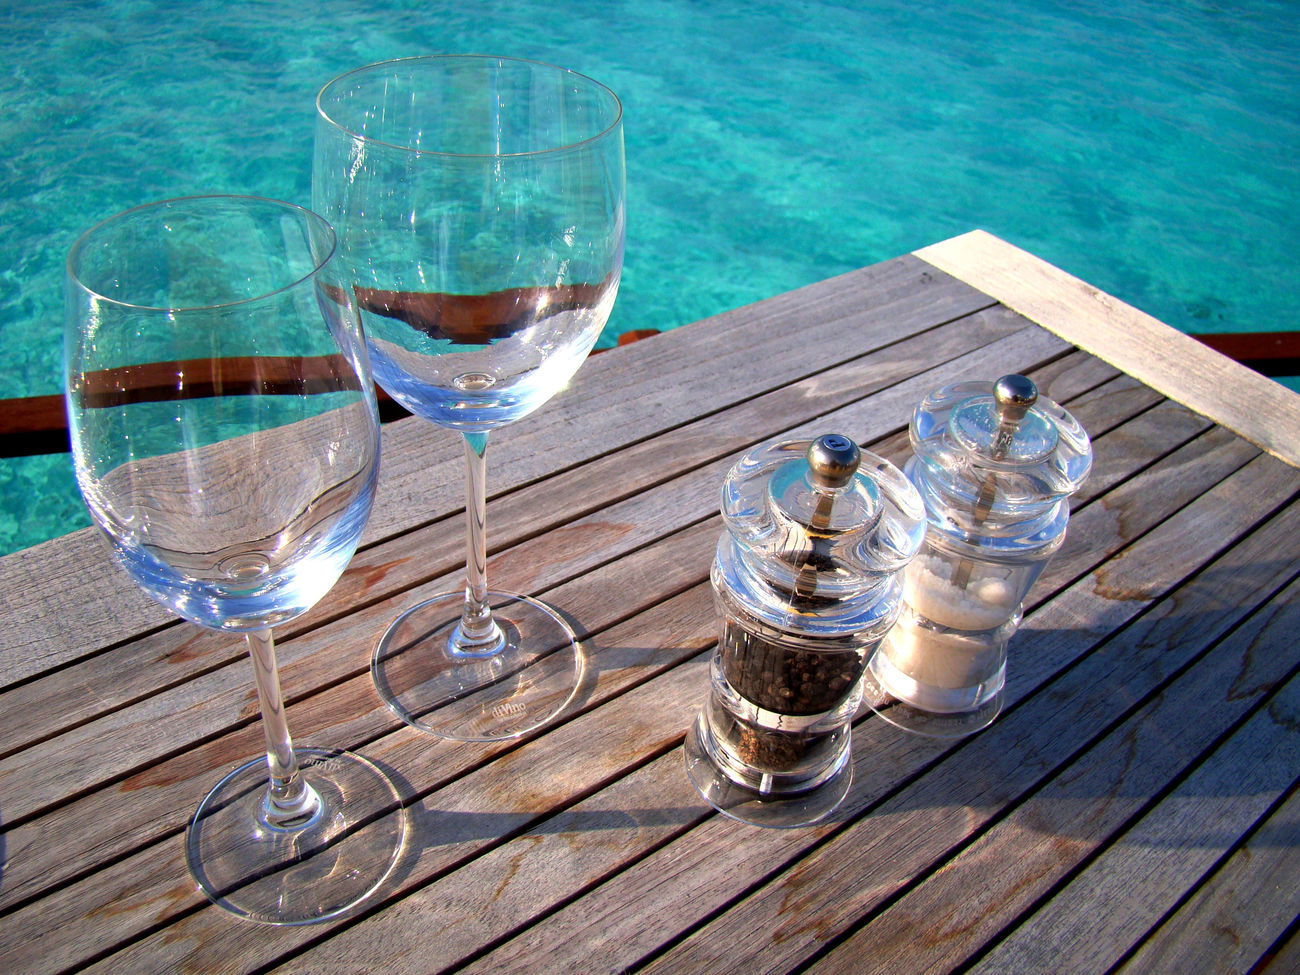 Alcohol Close-up Day Drinking Glass Food And Drink High Angle View Lunch Maldives No People Outdoors Outdoors Restaurant Restaurant Decor Summer Table Table Arrangement Table Setting Tropical Island Water Wine Wineglass